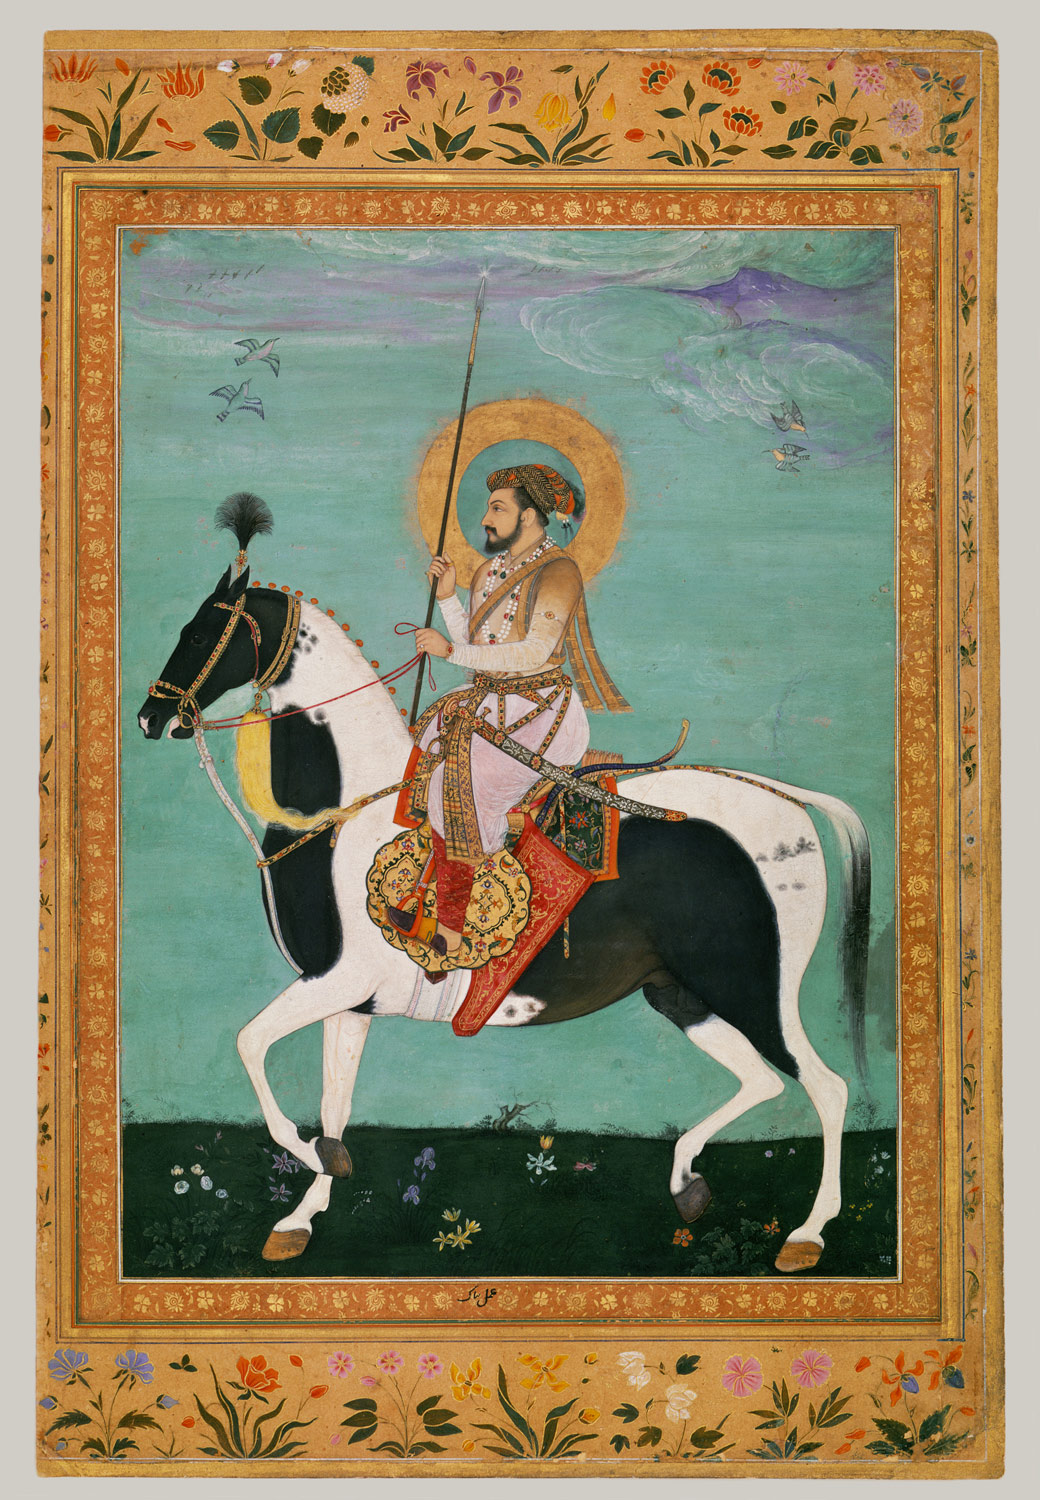 Shah Jahan on Horseback, Folio from the Shah Jahan Album